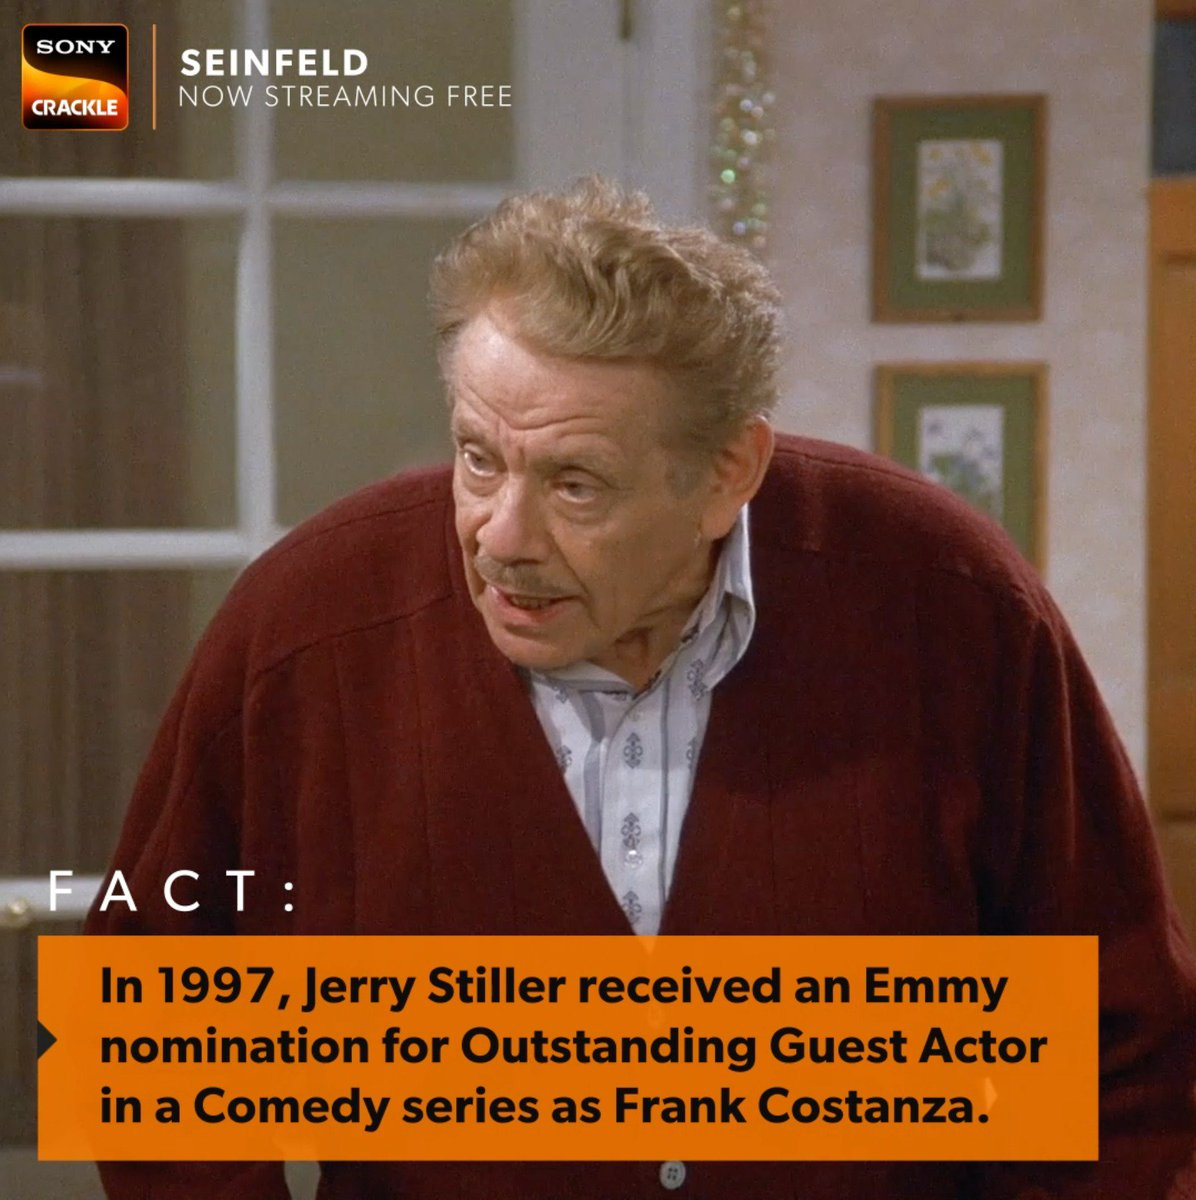 Crackle On Twitter Hoochie Mama Did You Know Jerry Stiller Got An Emmy Nomination For Playing Frank Costanza On Seinfeldtv Watch Every Episode Of Seinfeld Free On Sony Crackle Now Https T Co Bzt00pzswz Https T Co X3e7enno5a (reclining the seats in the van to a bed) hey, look at this. crackle on twitter hoochie mama did